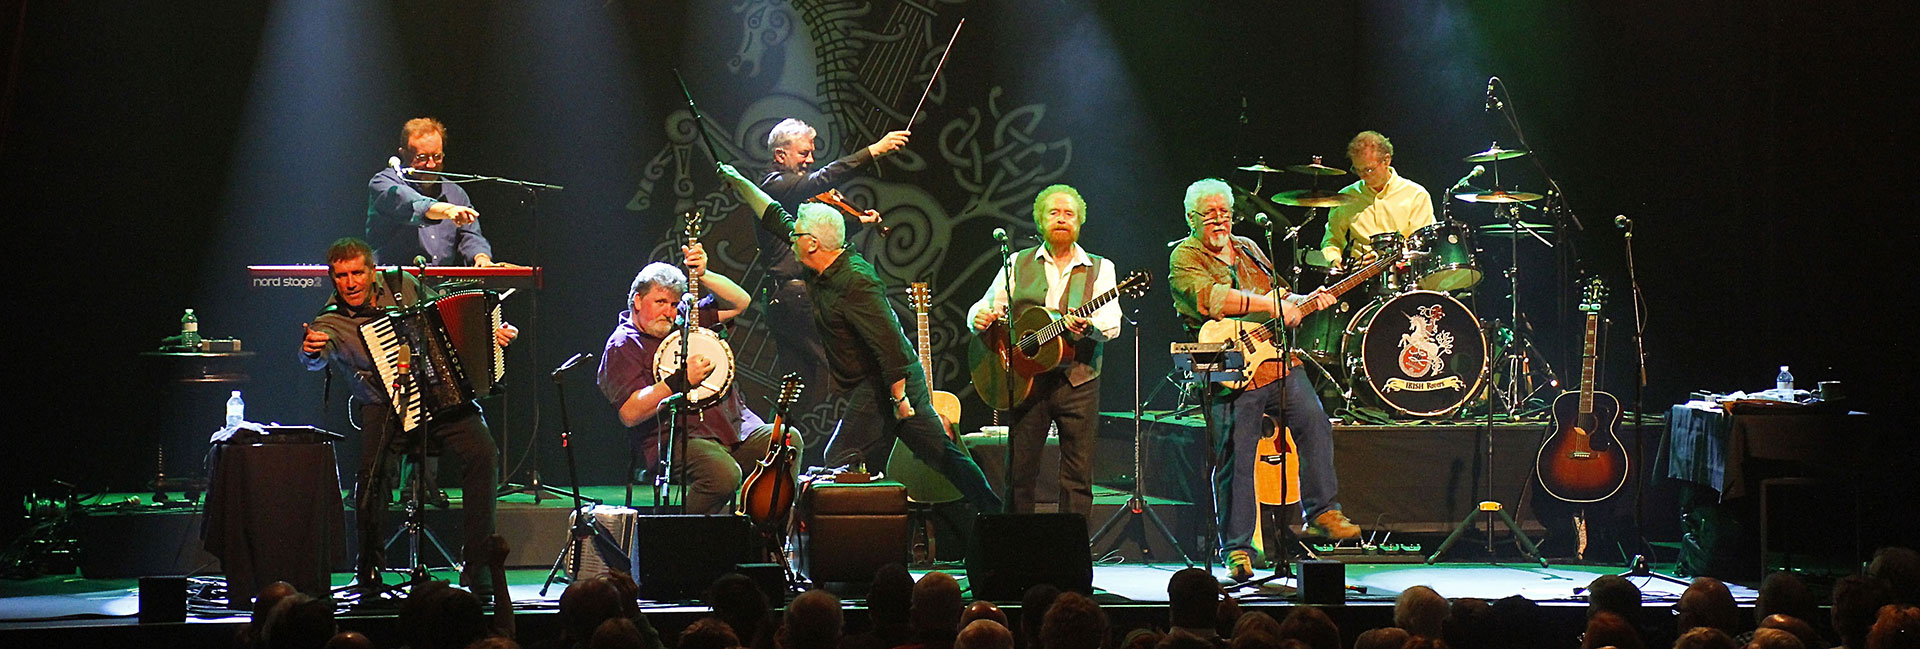 The Irish Rovers - Live on stage